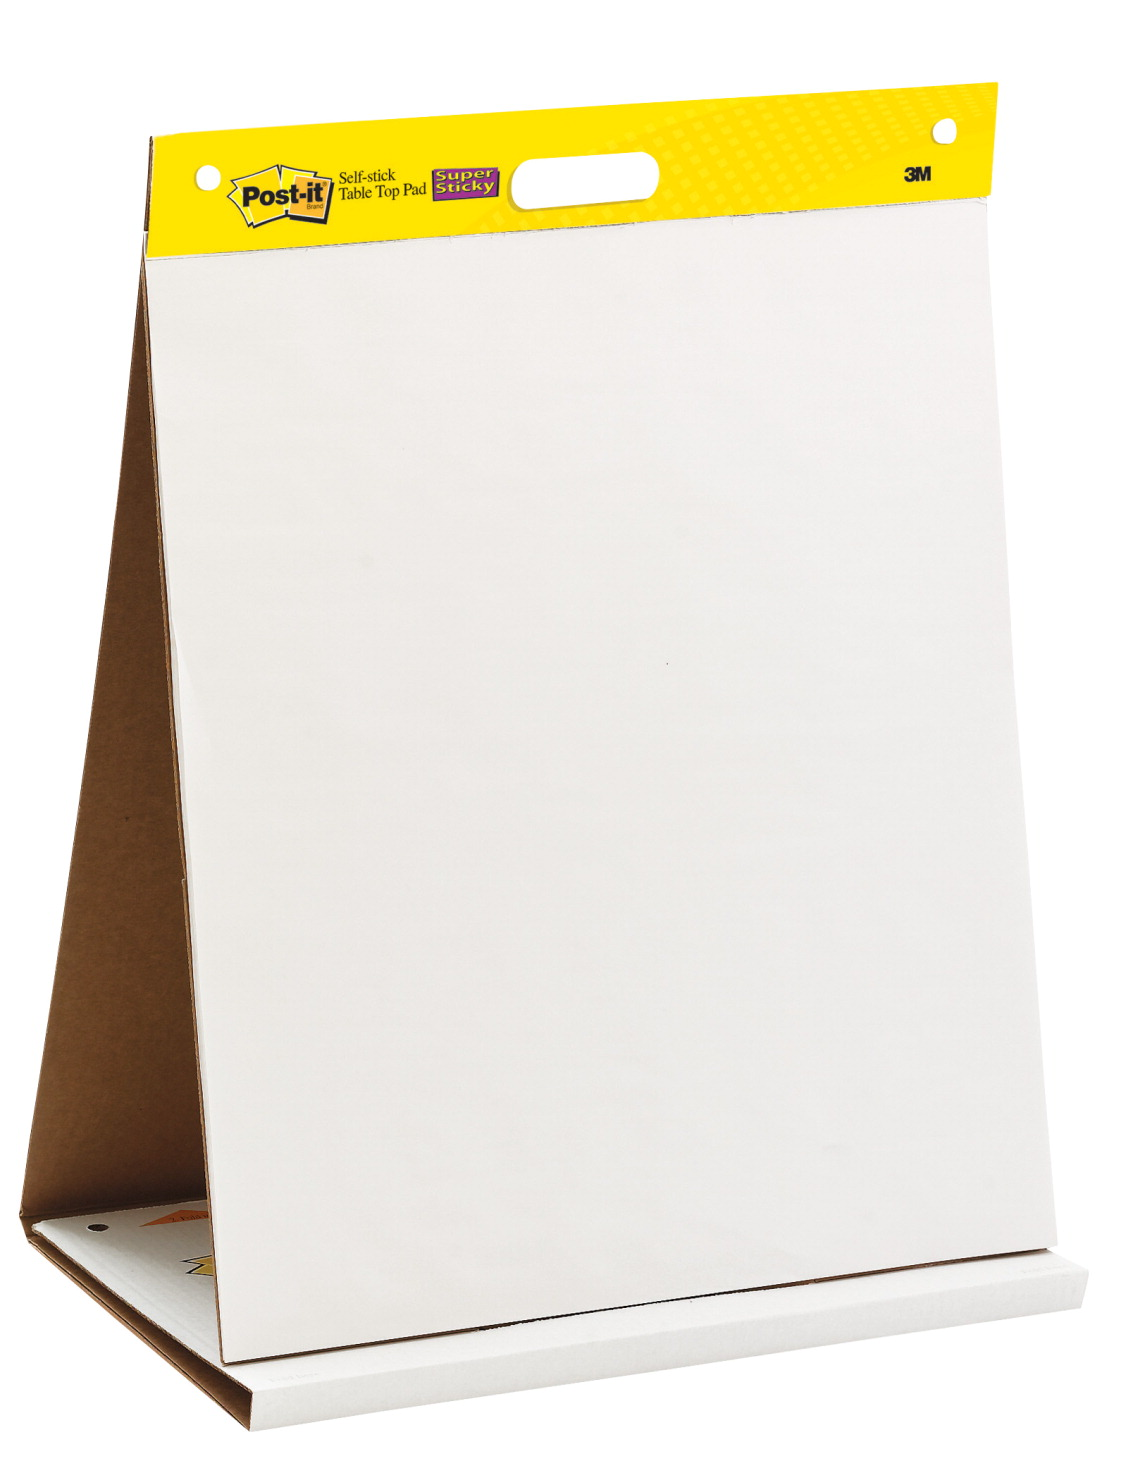 Post-it Self-Stick Easel Pad, 20 x 23 Inches, Unruled, White, 20 Sheets